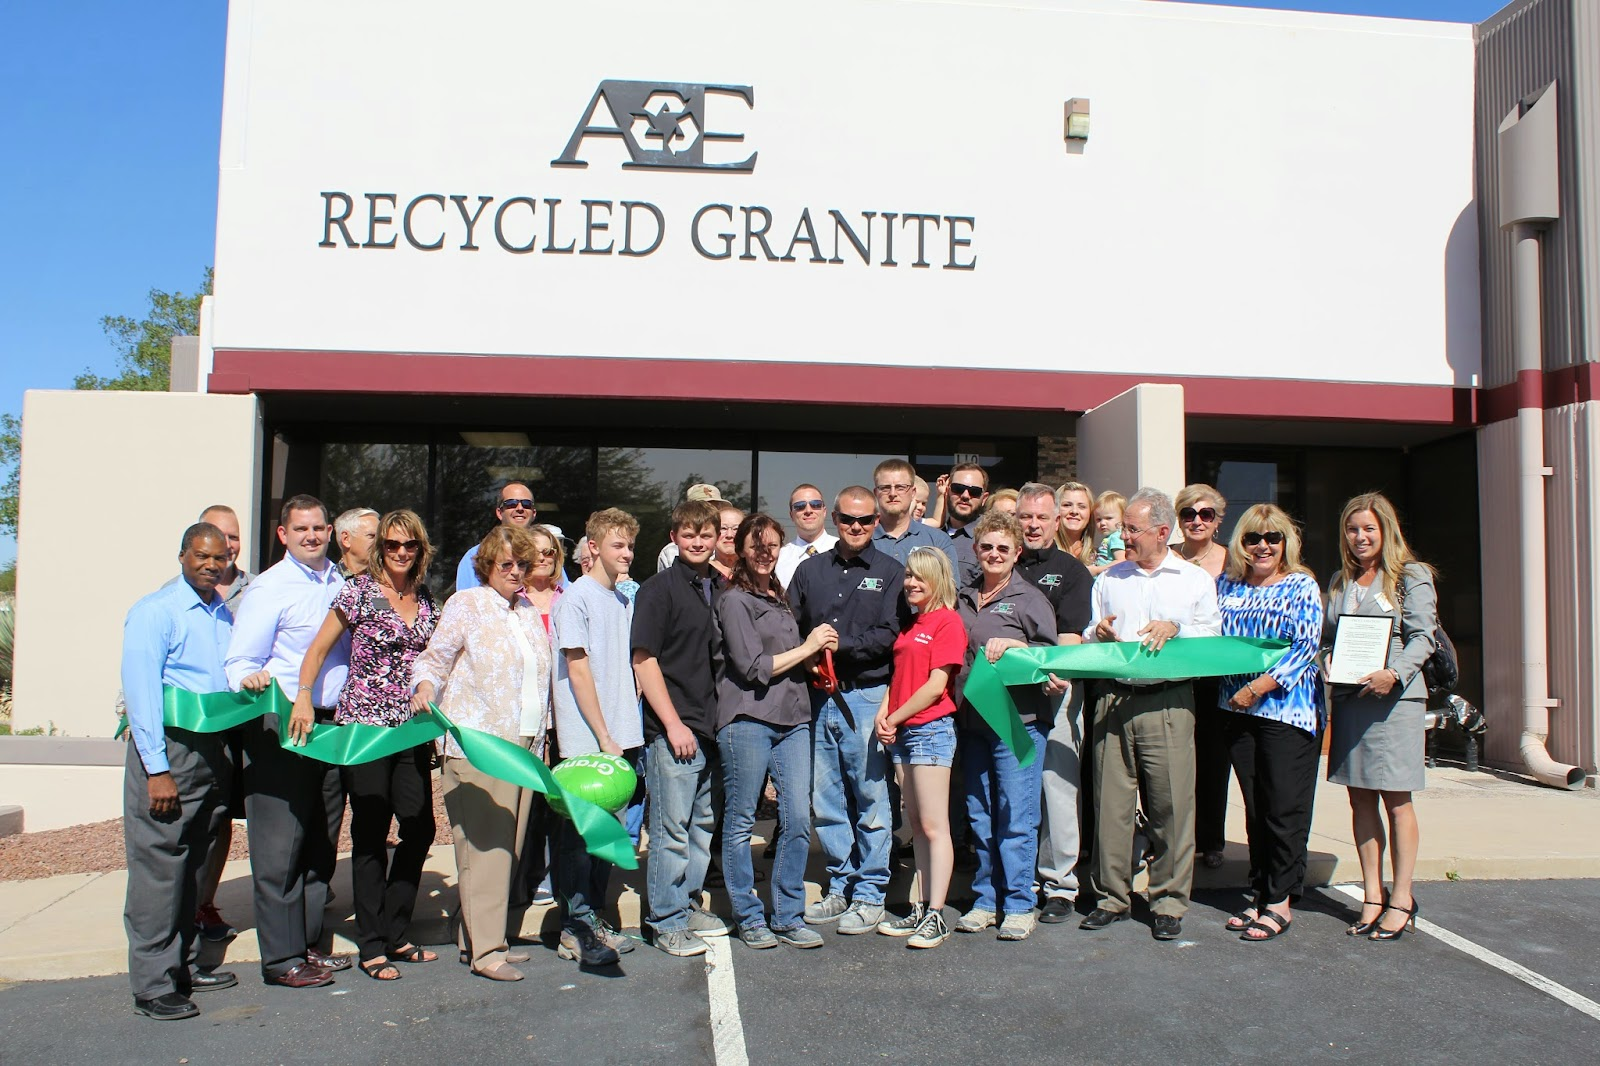 A&E Recycled Granite - Owners Joshua and Julie Olauson performed the Green ribbon cutting, officially opening A&E Recycled Granite, LLC. Corporation members Alfred and Anita Dean, Alfred I. Dean, Vance and Erin Goodman also participated. The event included family members, Mayor Rothschild, Council Member Shirley Scott and 250 guests.